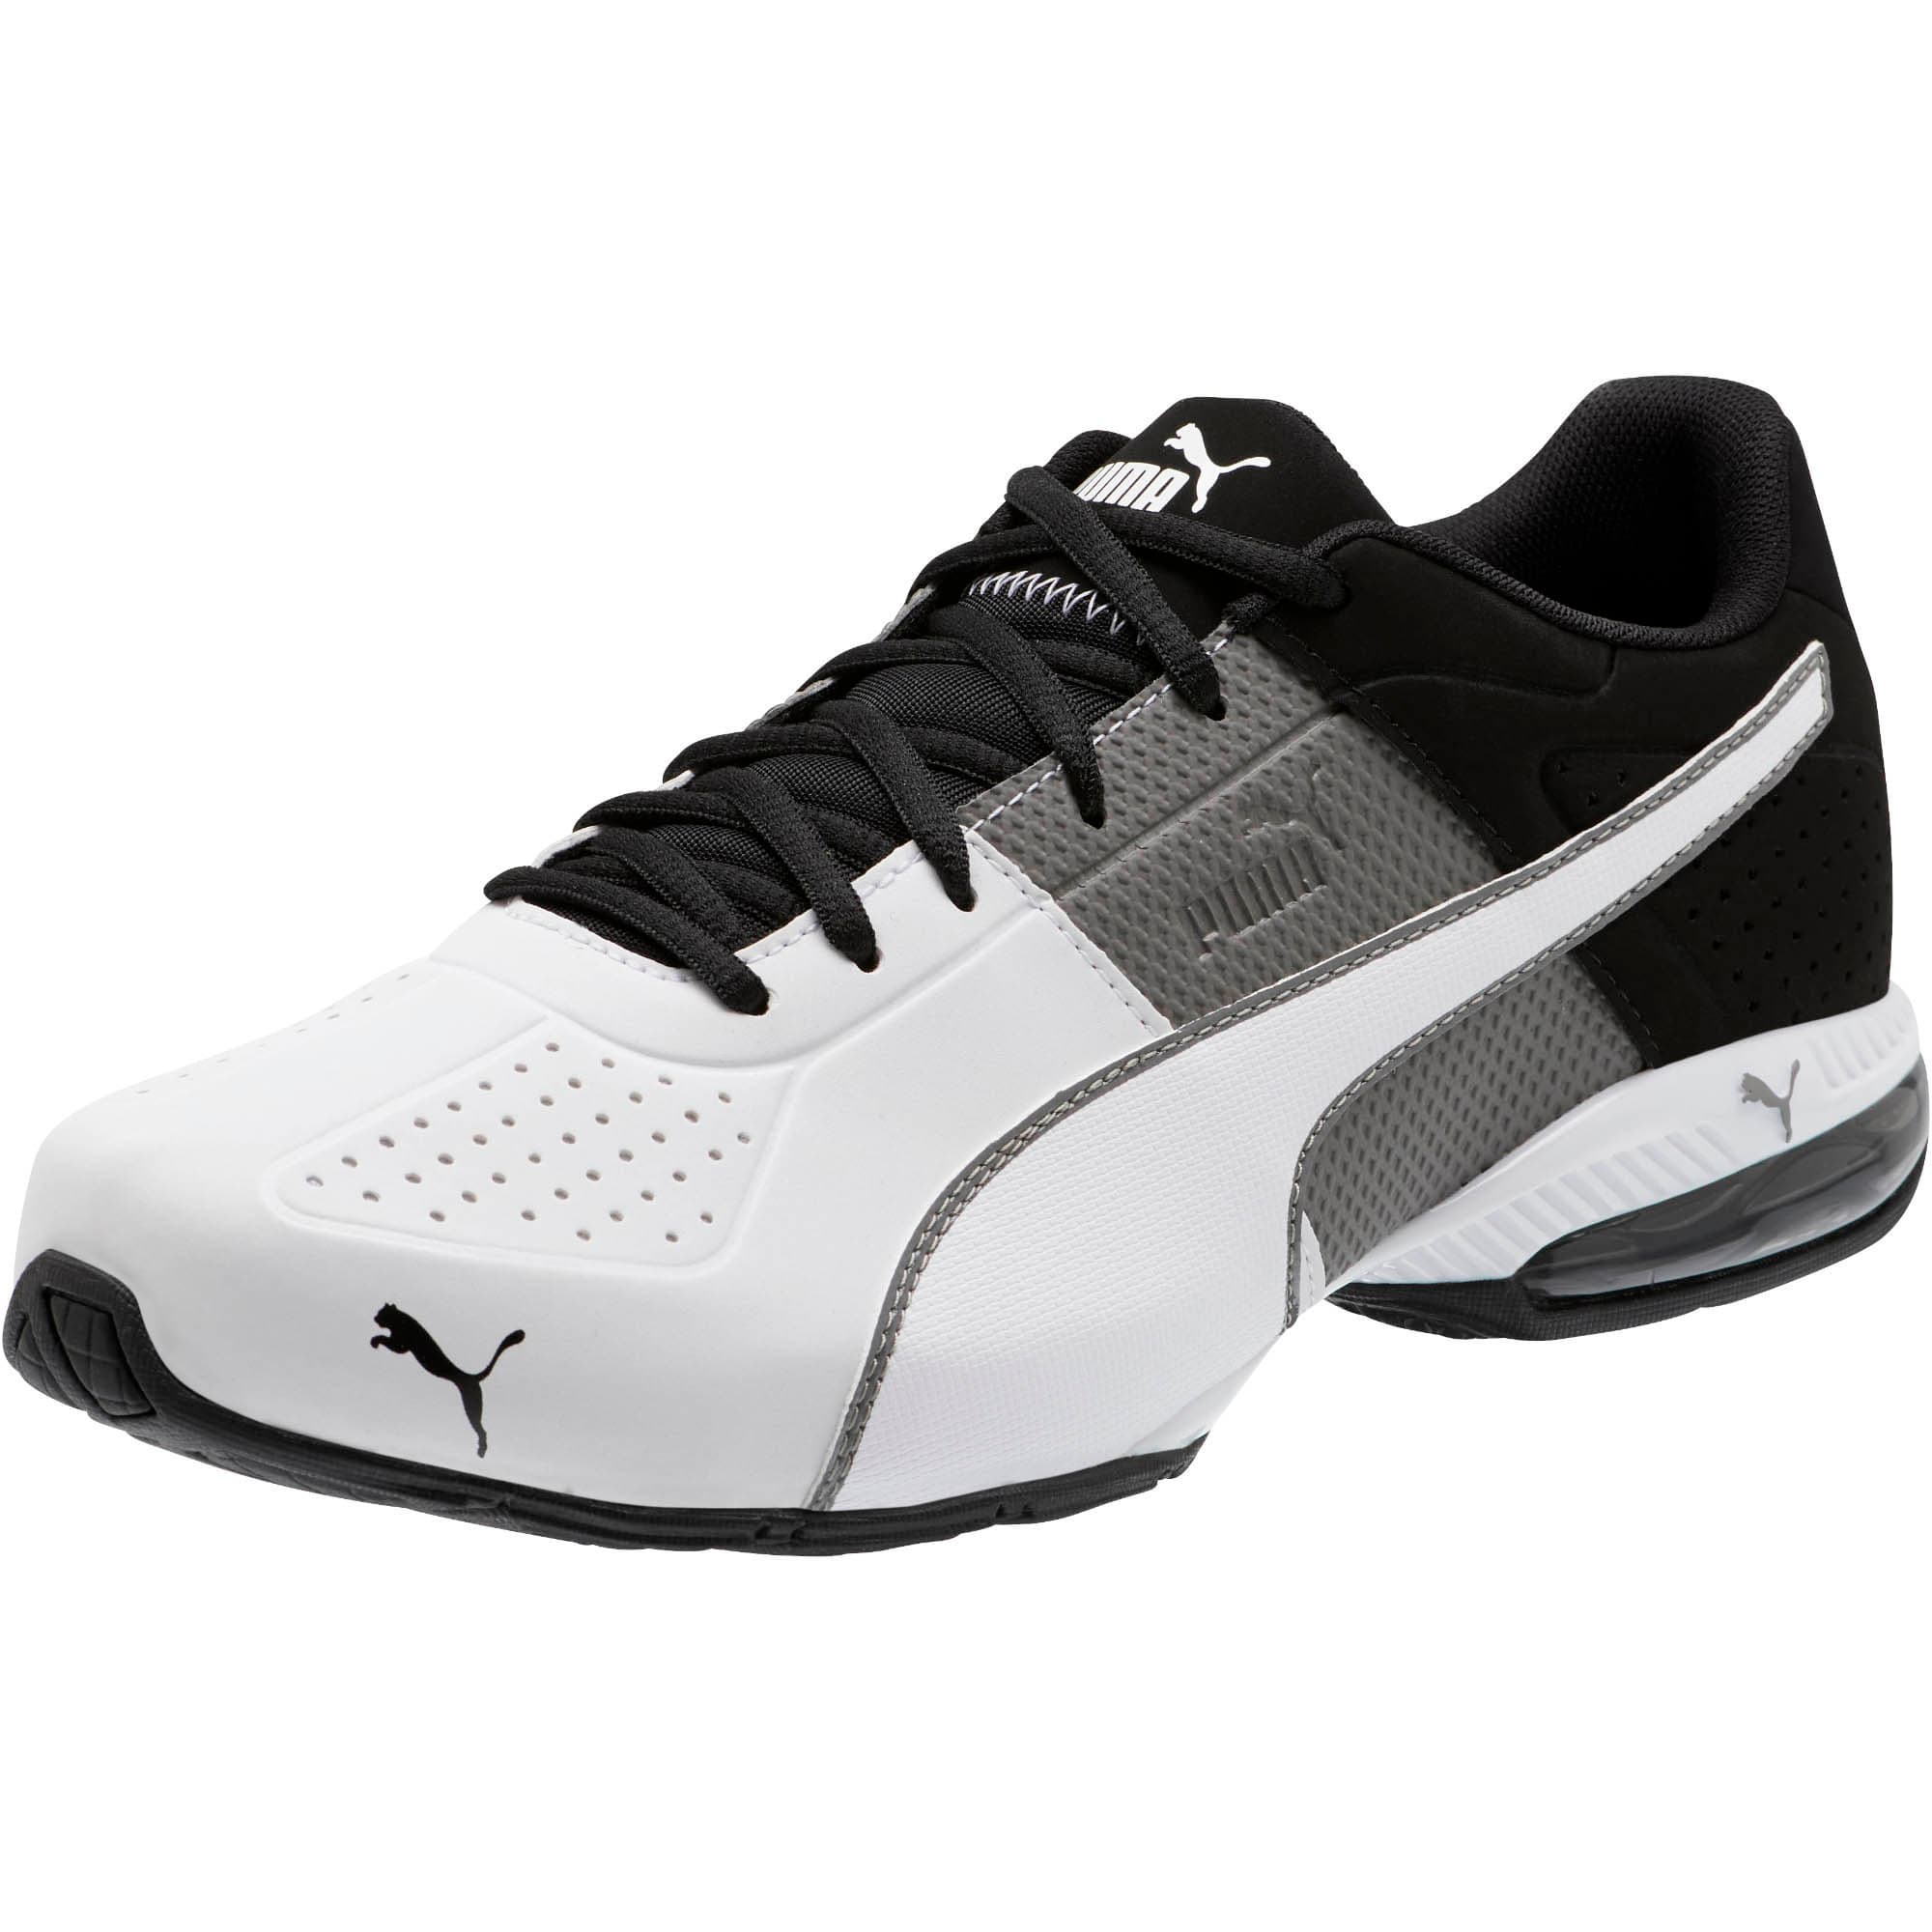 Thumbnail 1 of CELL Surin 2 Matte Men's Training Shoes, Charcoal Gray-Puma White, medium